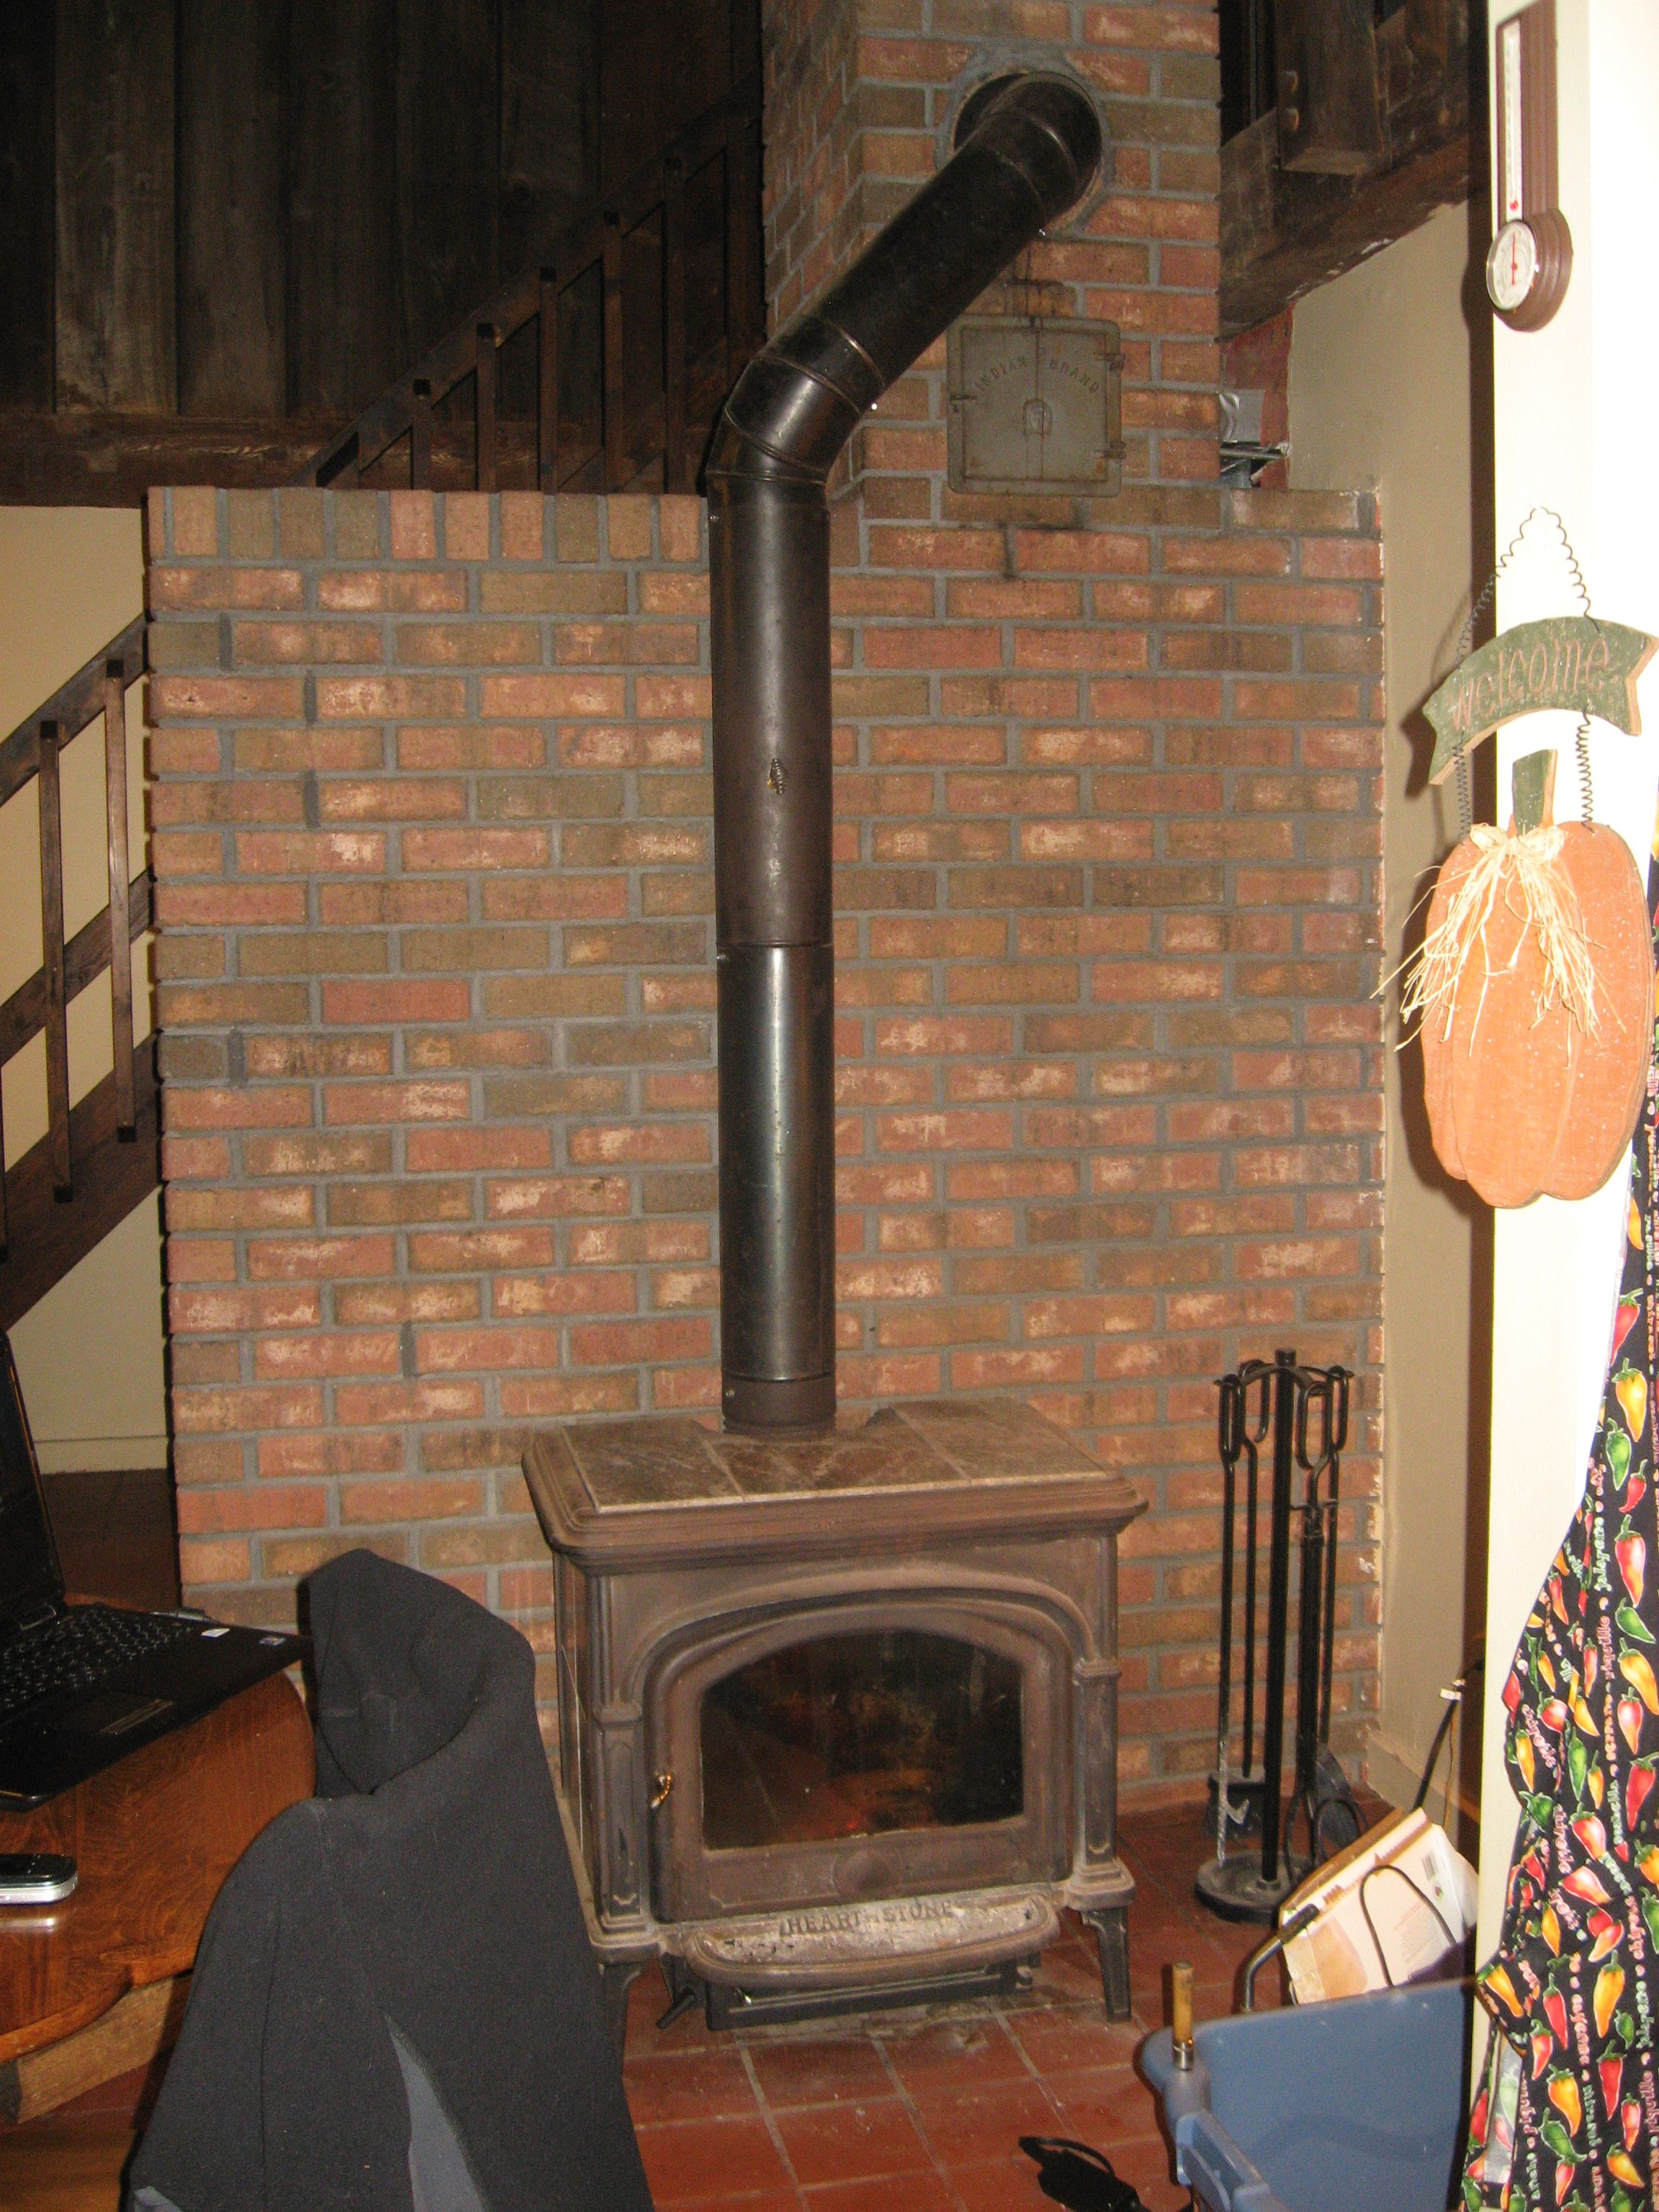 The Russian fireplace behind the woodstove. That whole brick mass heats up and radiates the heat so one hot fire a day heats the house for 12 hours.